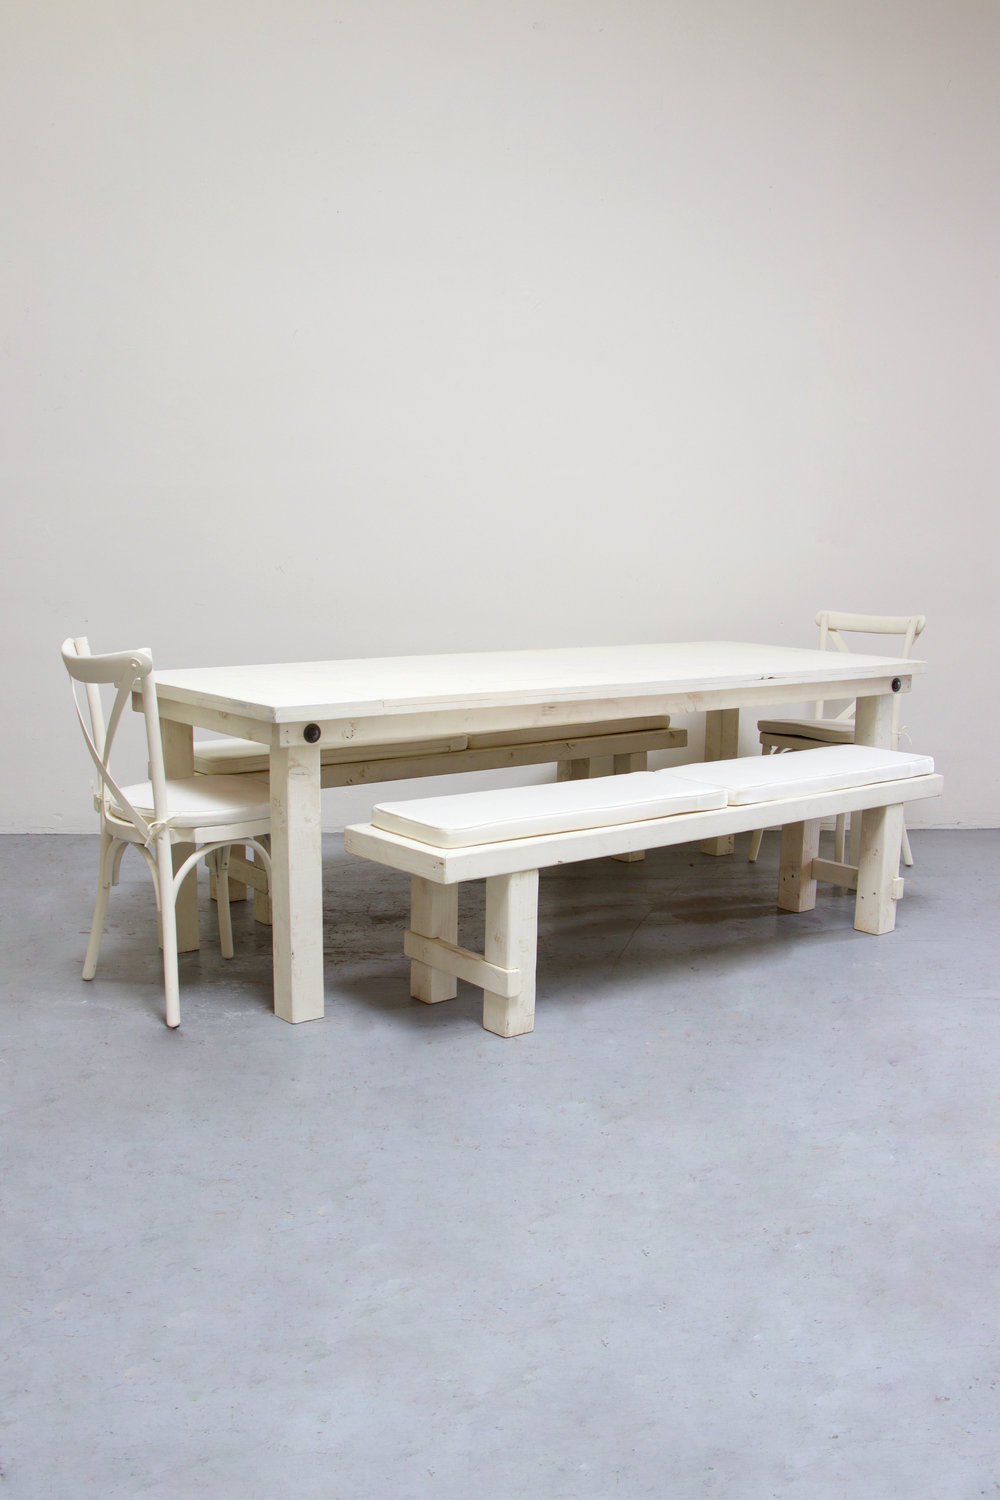 $160 1 Vintage White Farm Table w/ 2 Long Benches & 2 Cross-Back Chairs